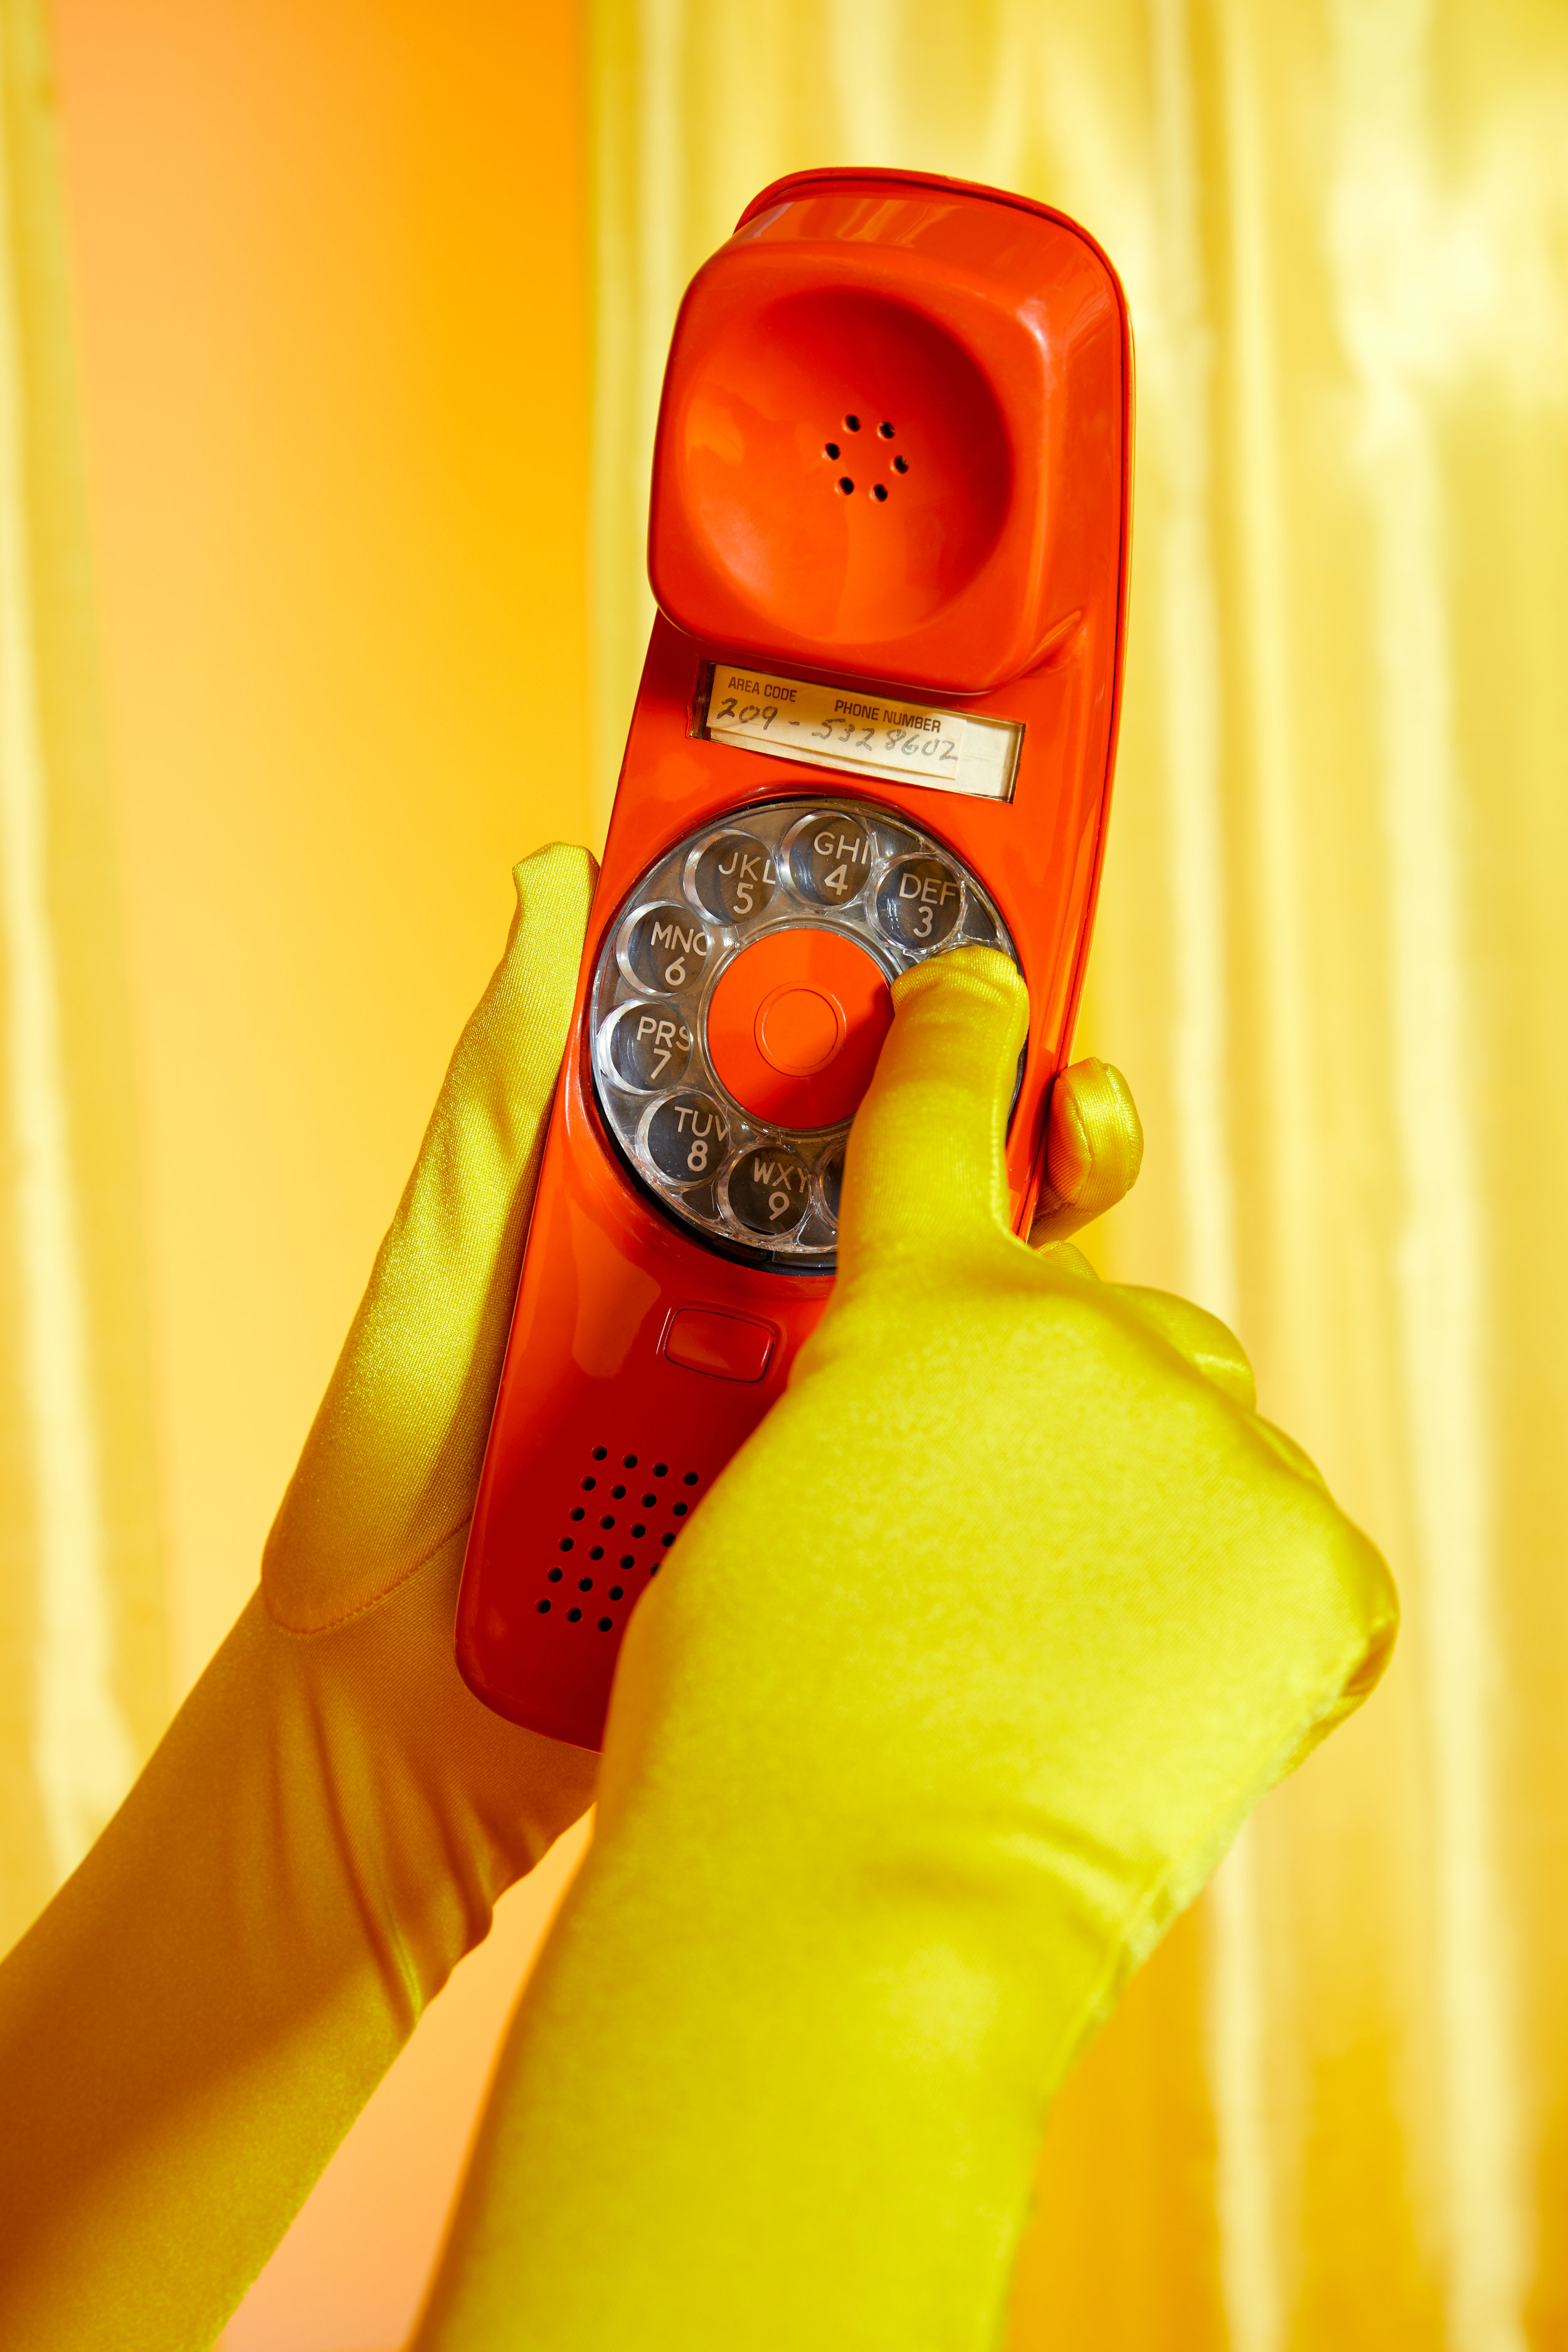 Orange-Yellow-Phone-Gloves-Dialing.jpg